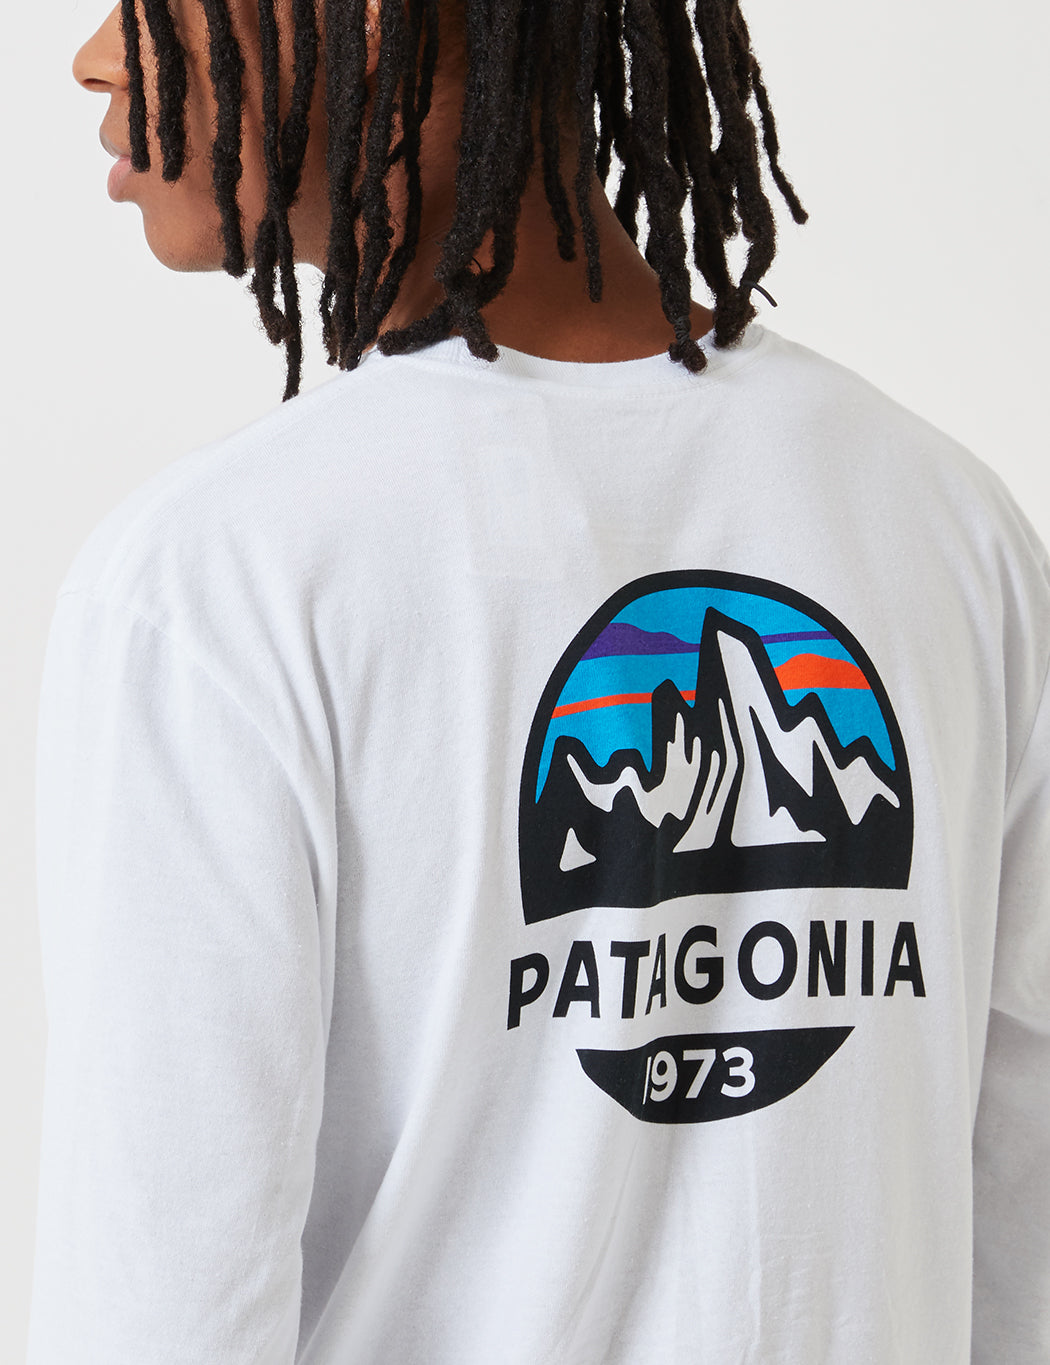 Patagonia Fitz Roy Scope Long Sleeve Responsibili­-Tee T-Shirt - White